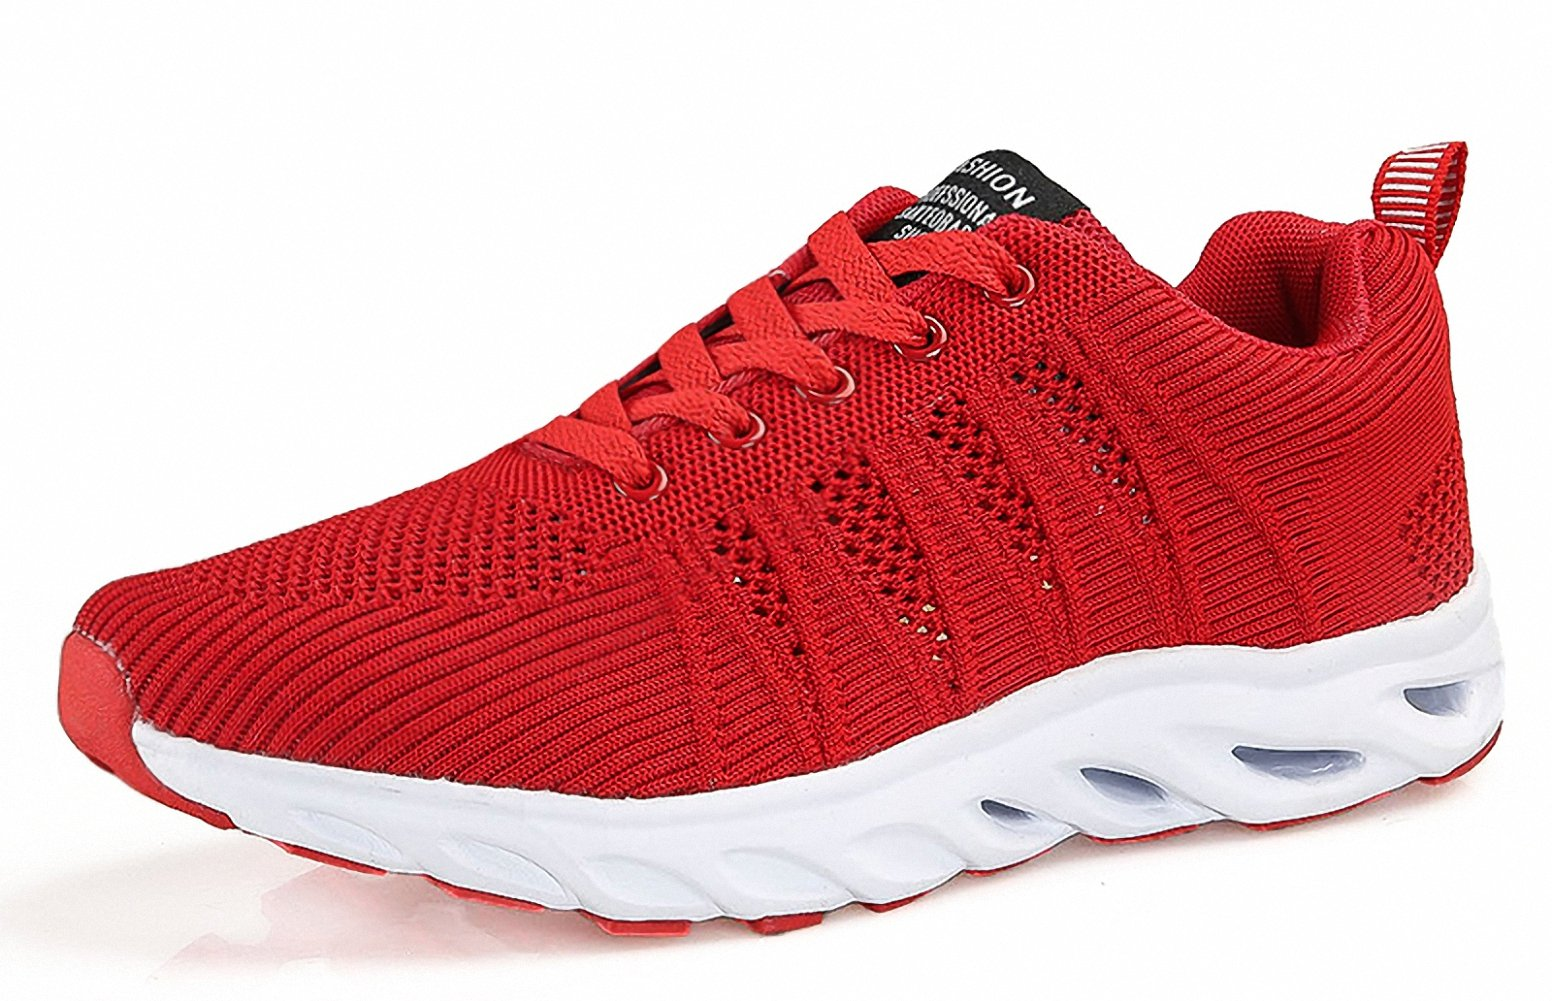 ZHENZHONG Womens's Comfortable Fashion Running Sneaker Shoes Red for Walking Jogging